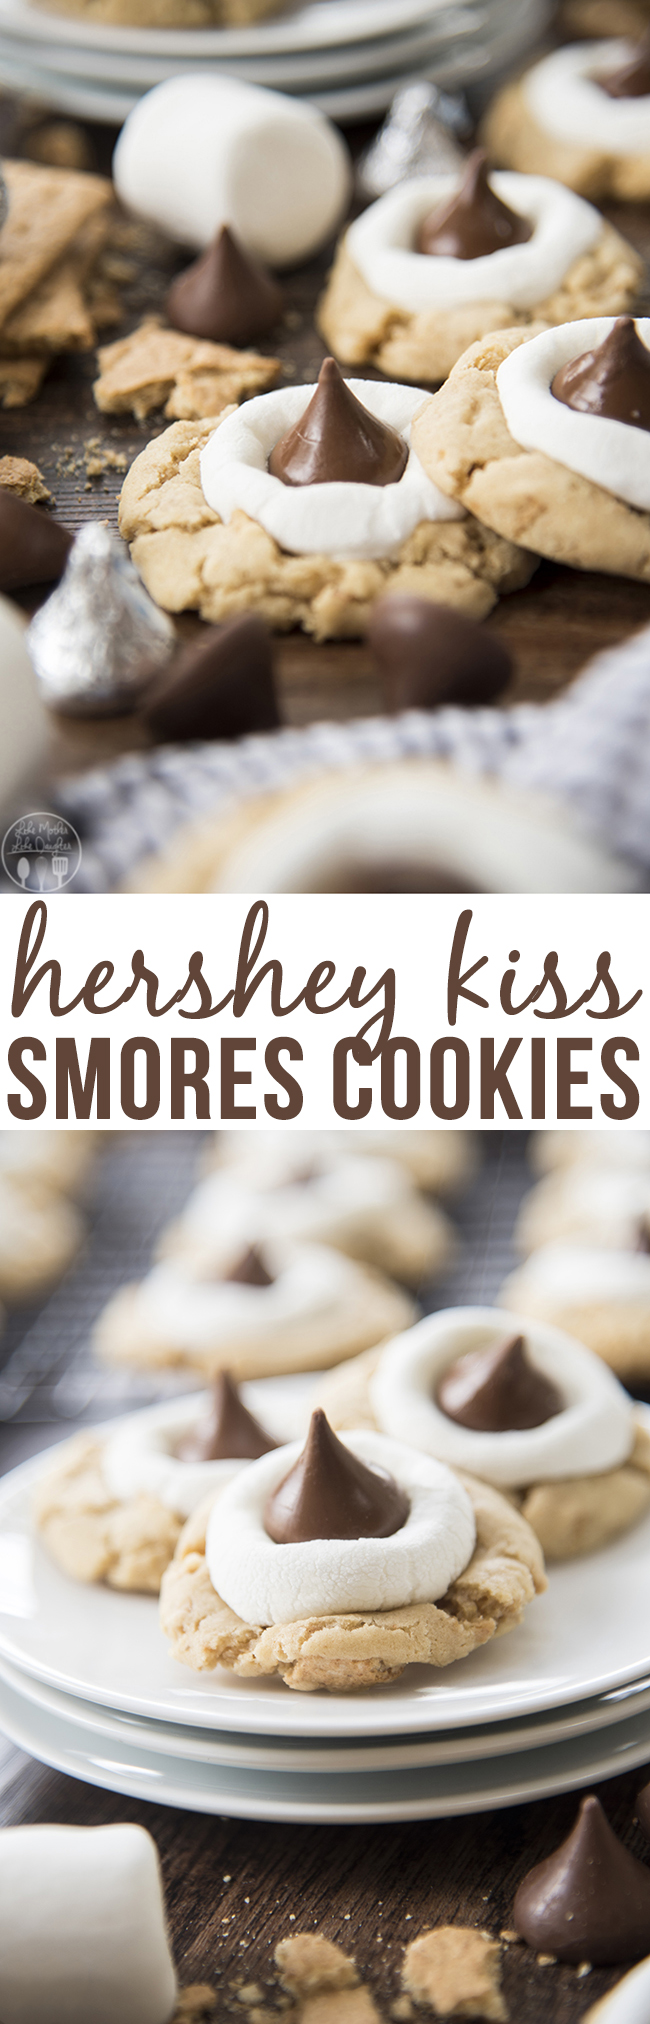 Hershey Kiss S'mores Cookies - These s'mores cookies start with a graham cracker filled cookie base, topped with a gooey marshmallow, and a chocolate kiss - for your favorite s'mores flavors in a delicious and cute cookie!